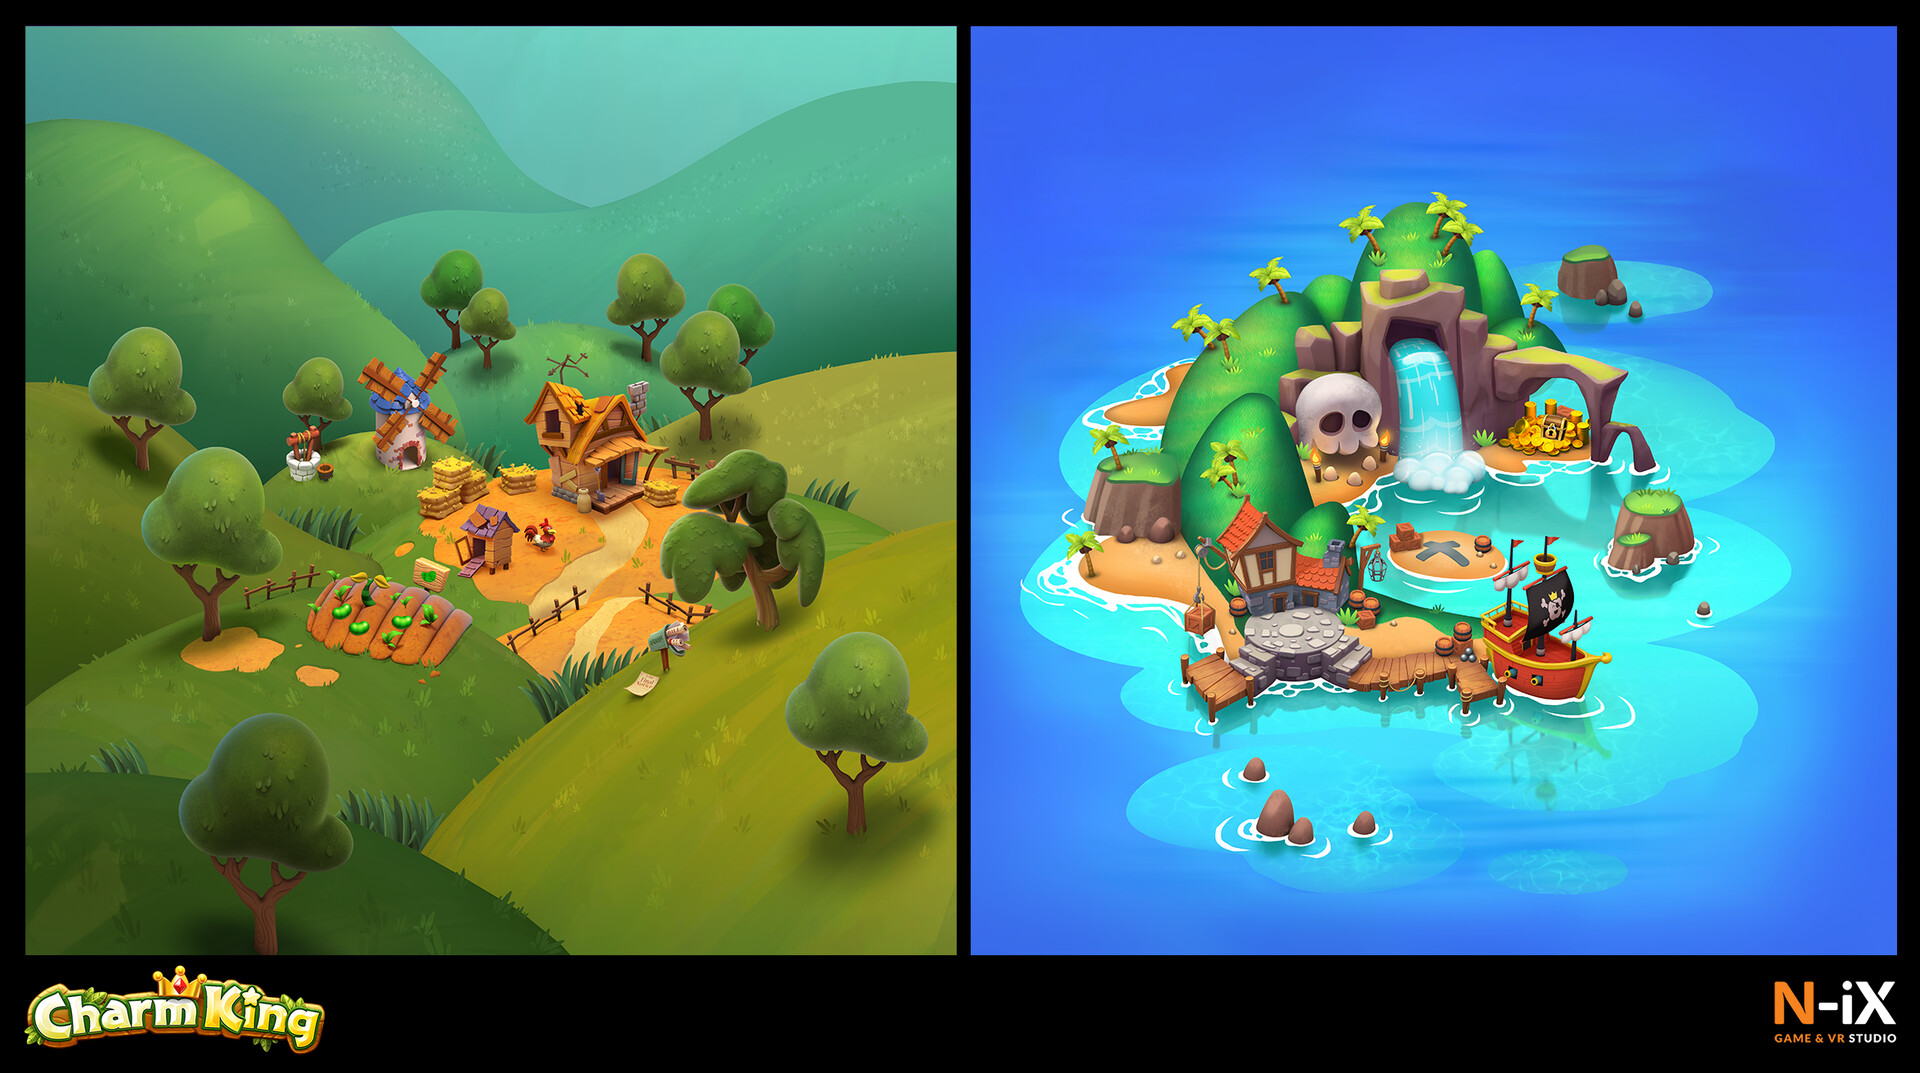 Charm King